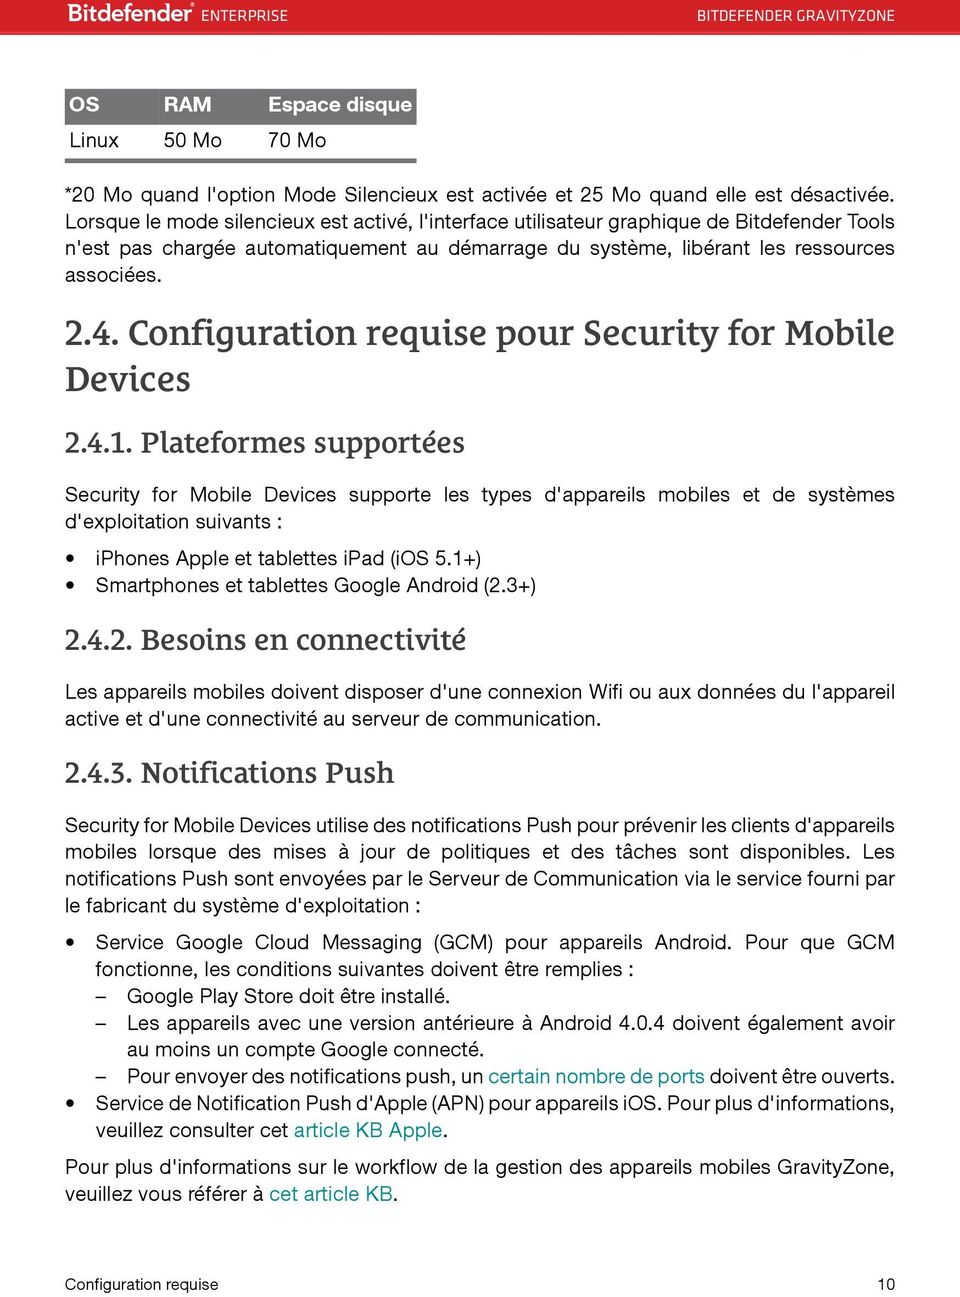 Configuration requise pour Security for Mobile Devices 2.4.1.